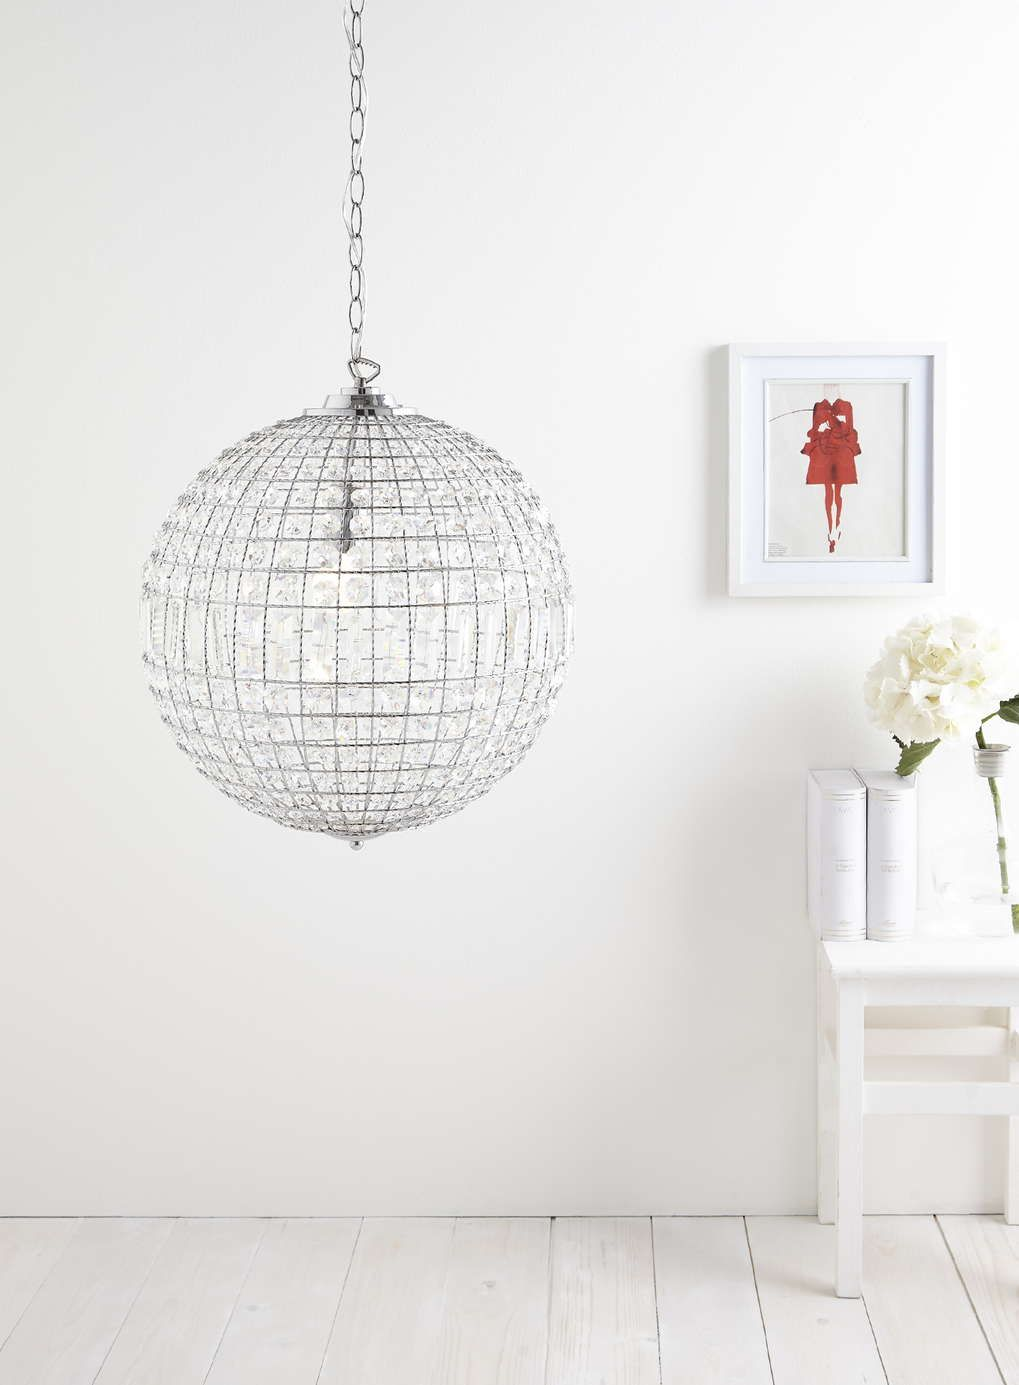 Bathroom Chandeliers Bhs 60% off: ursula large crystal ball chandelier pendant light - bhs